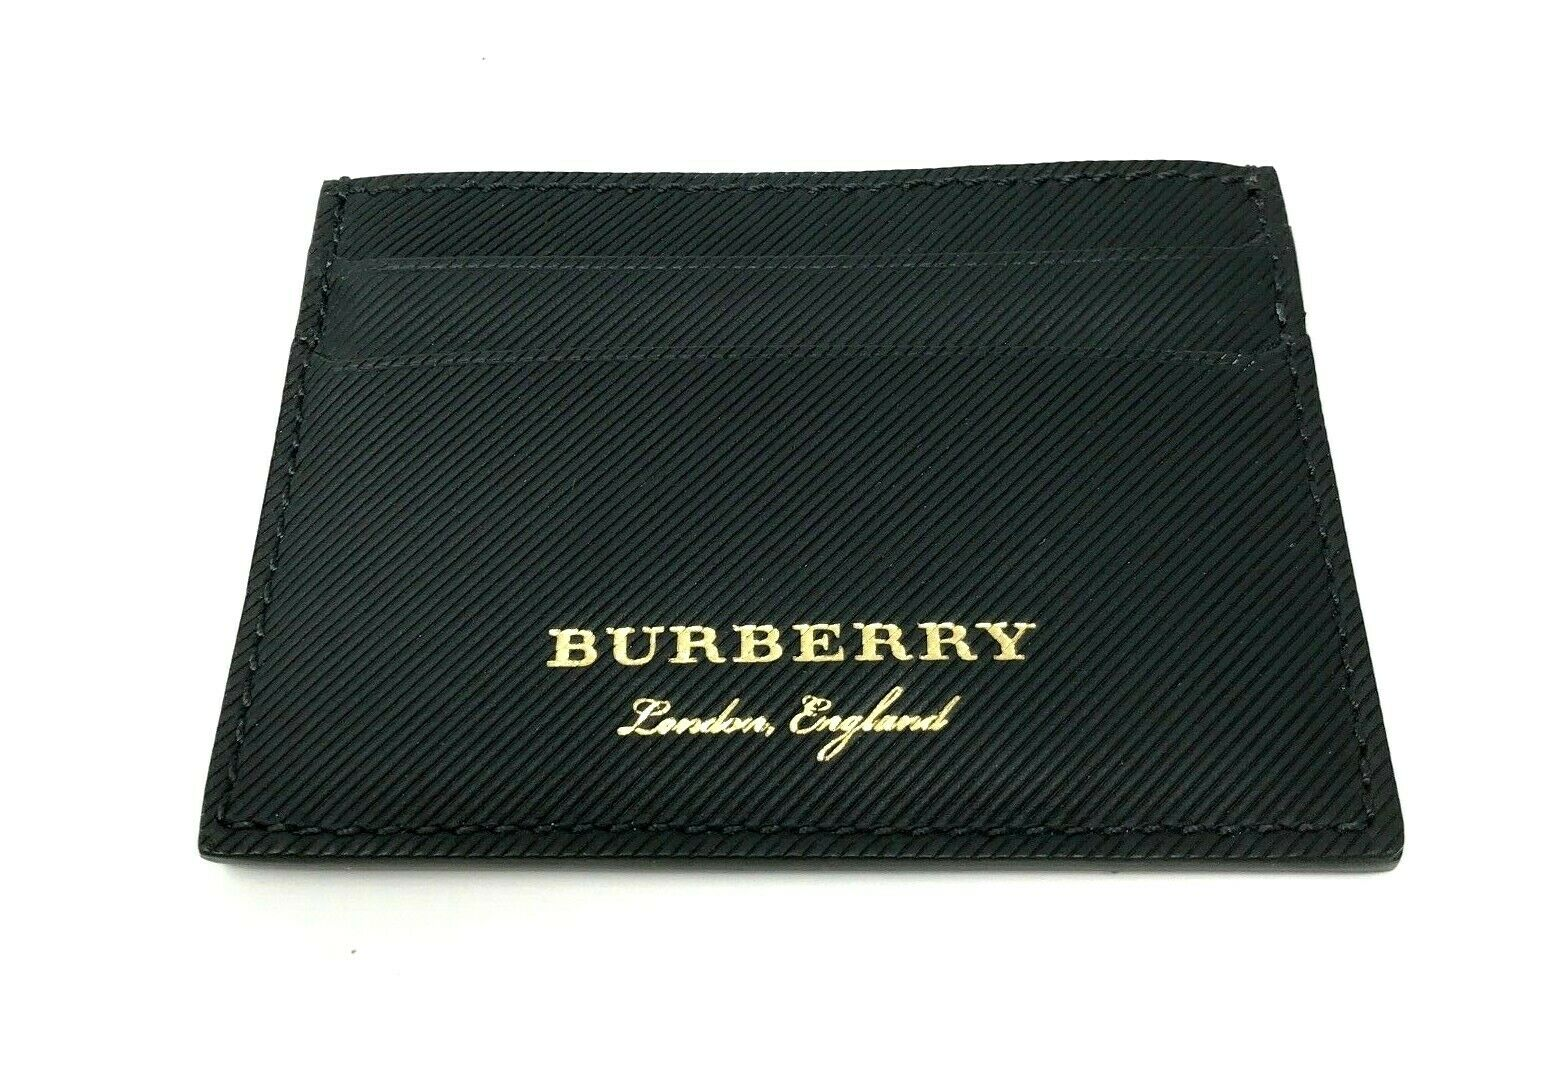 Burberry Men's Trench Sandon Black Leather Card Case Wallet